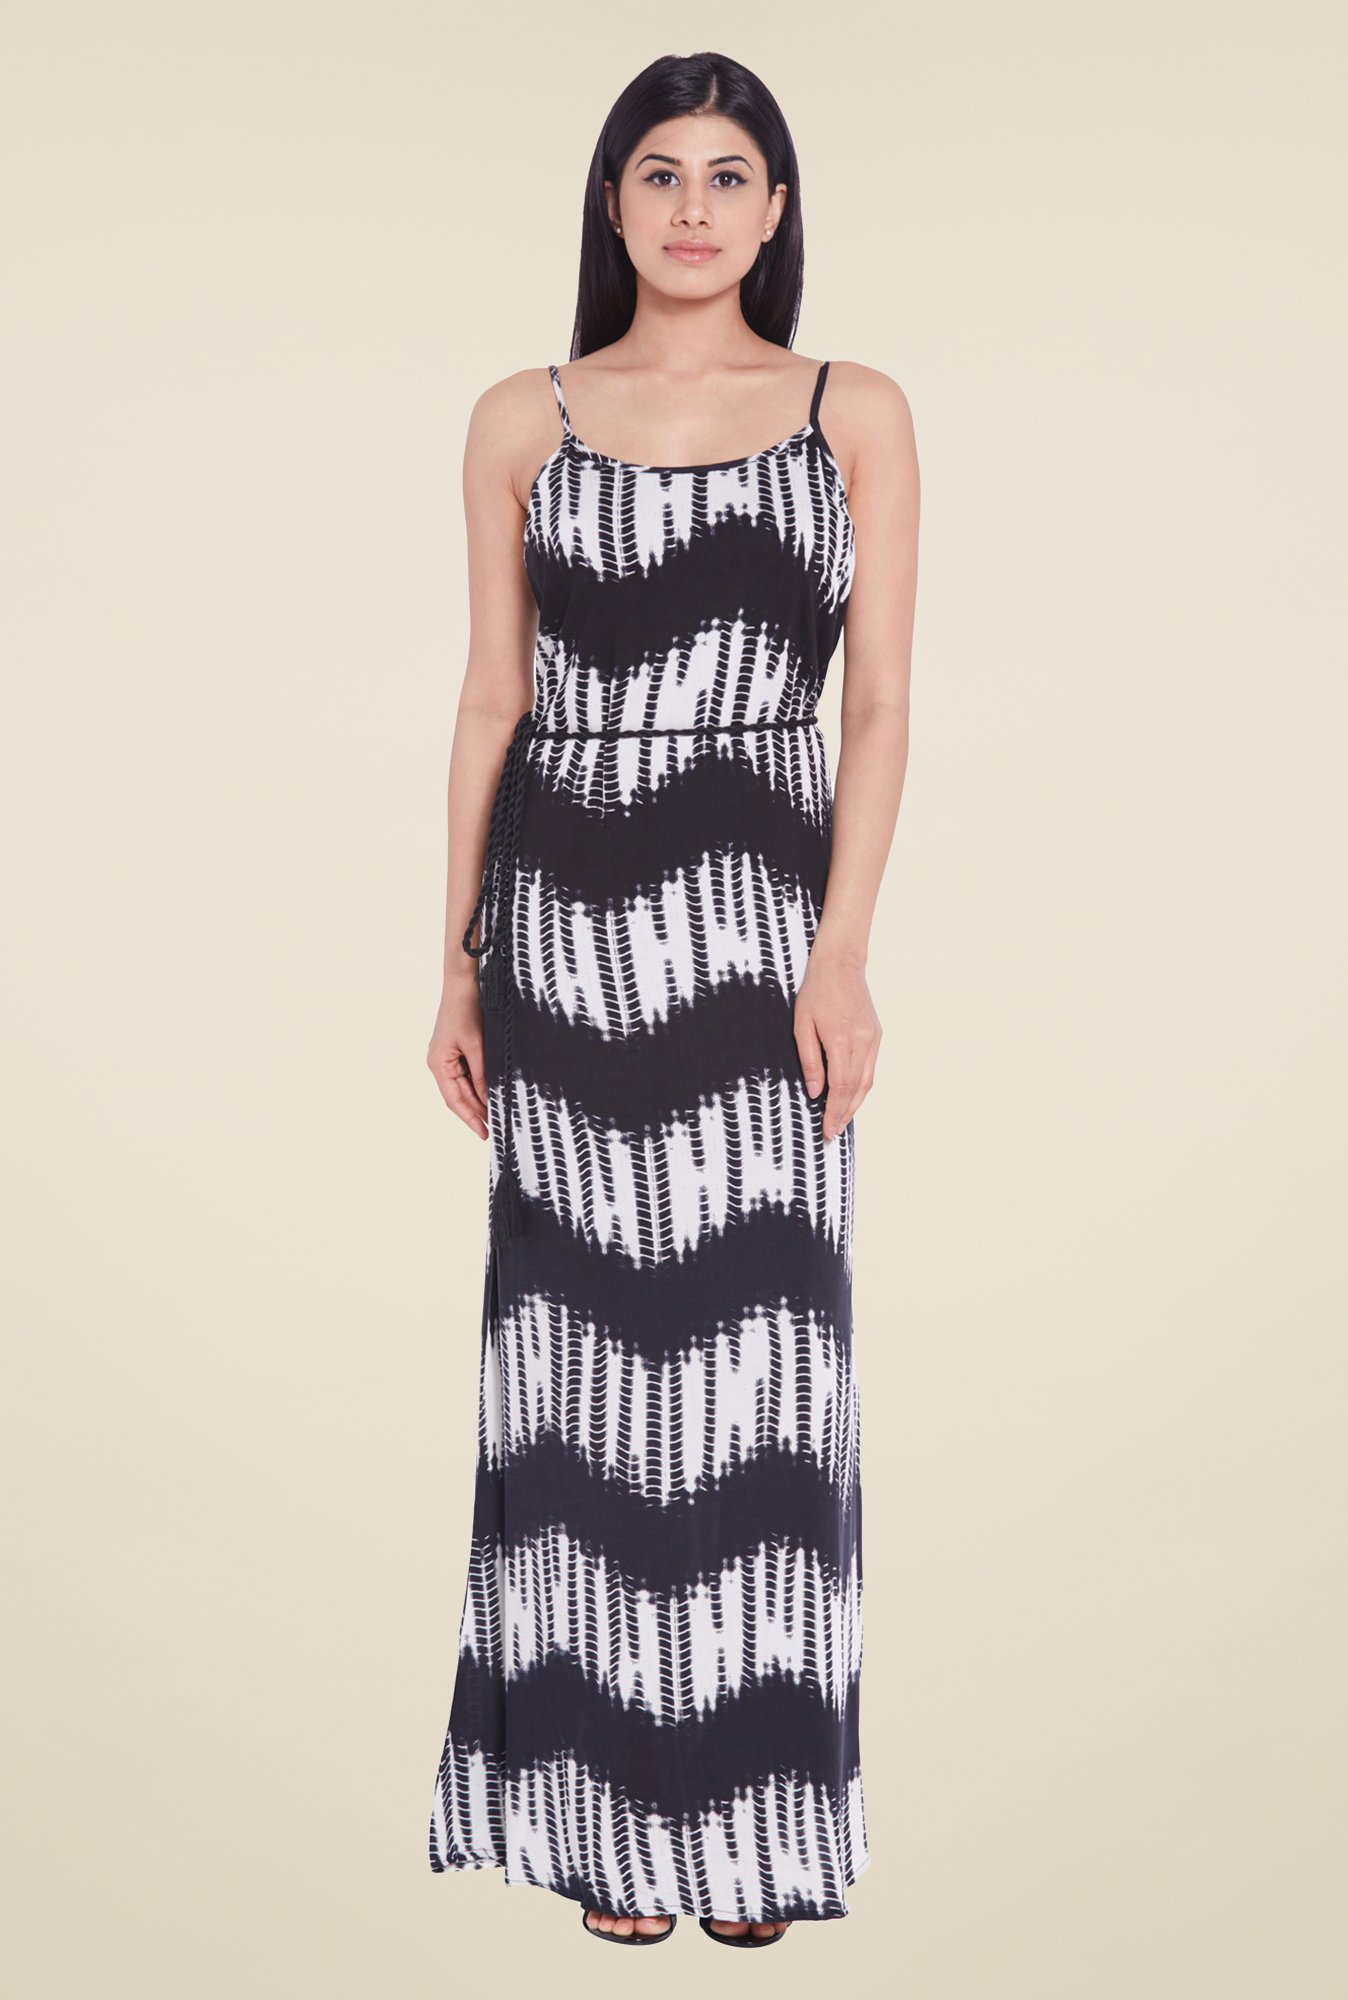 Globus Black Printed Maxi Dress